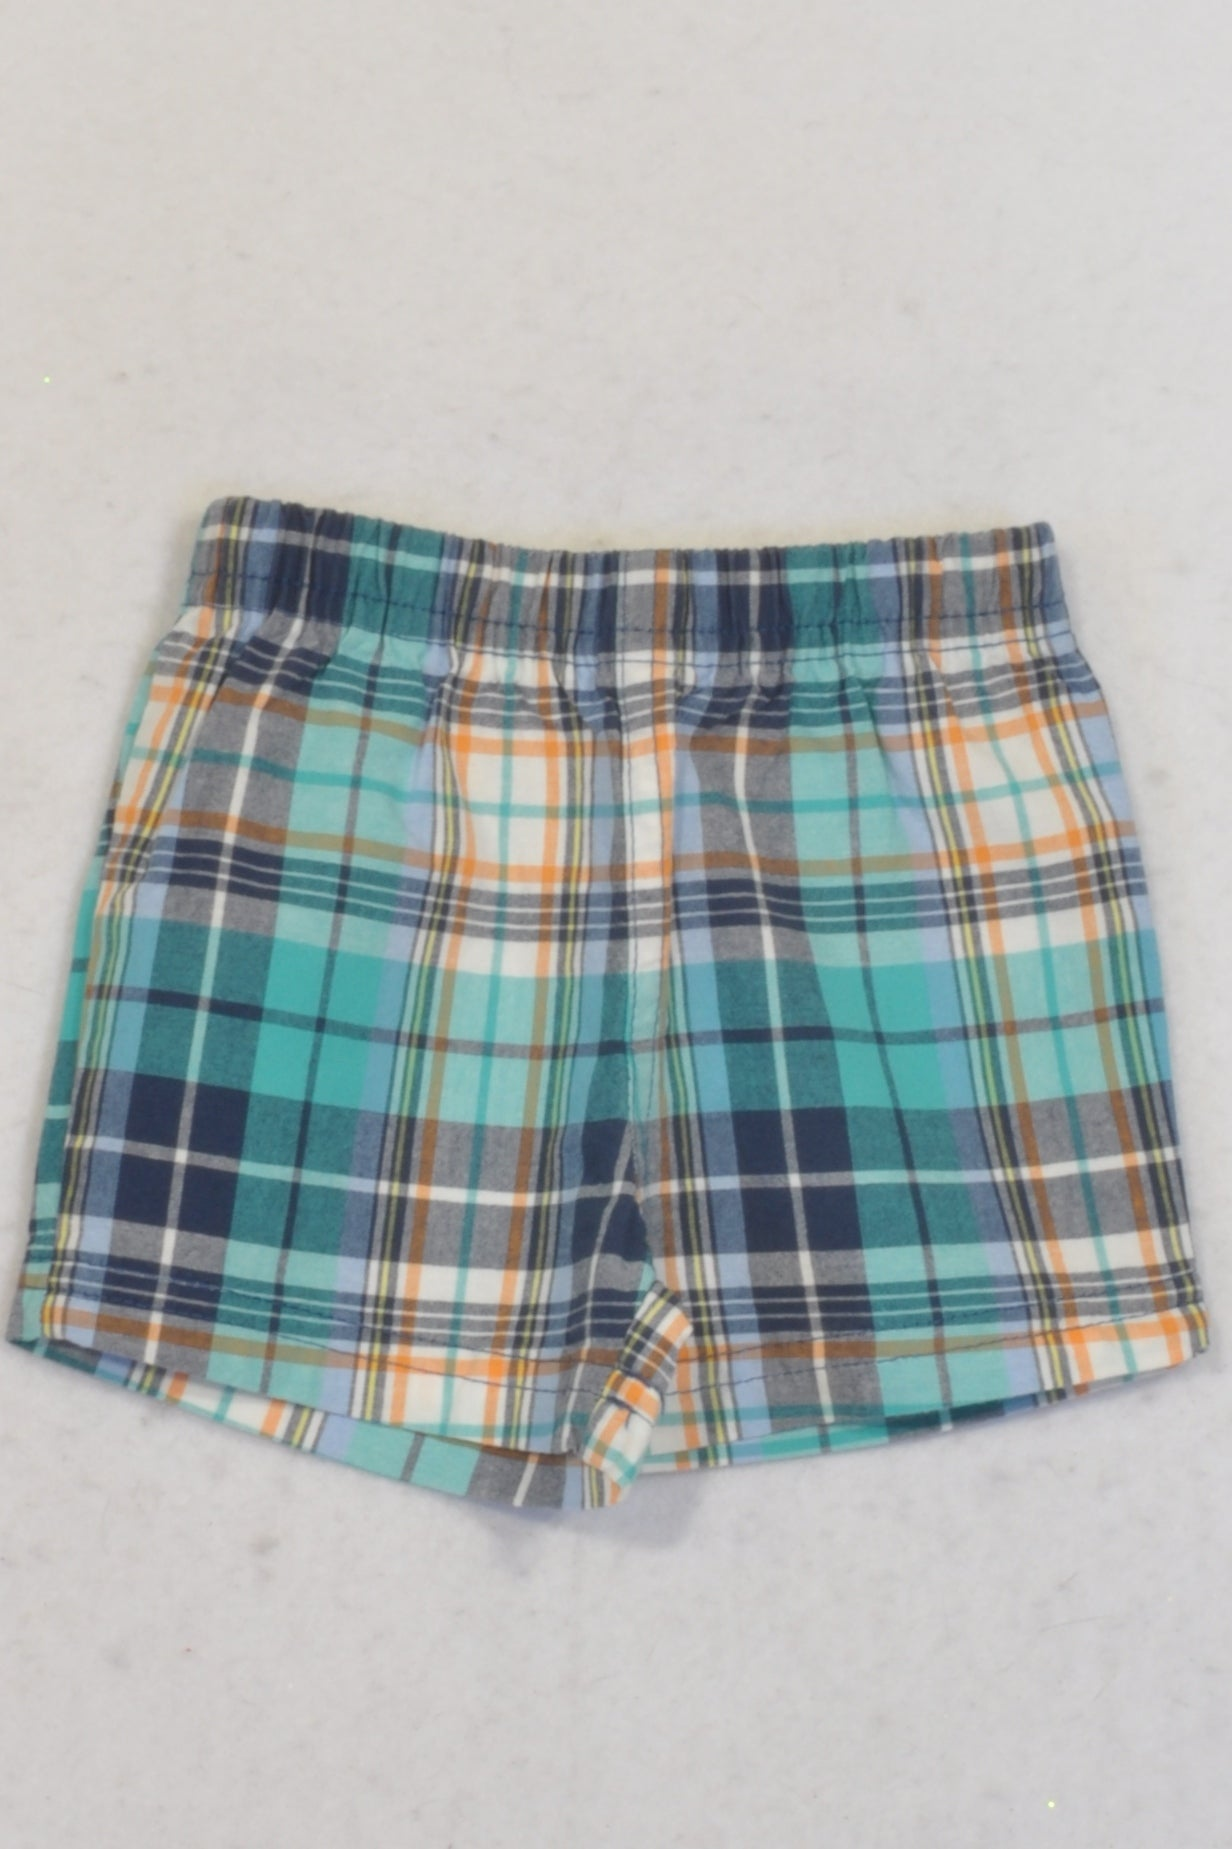 Carter's Blue Plaid Shorts Boys 0-3 months